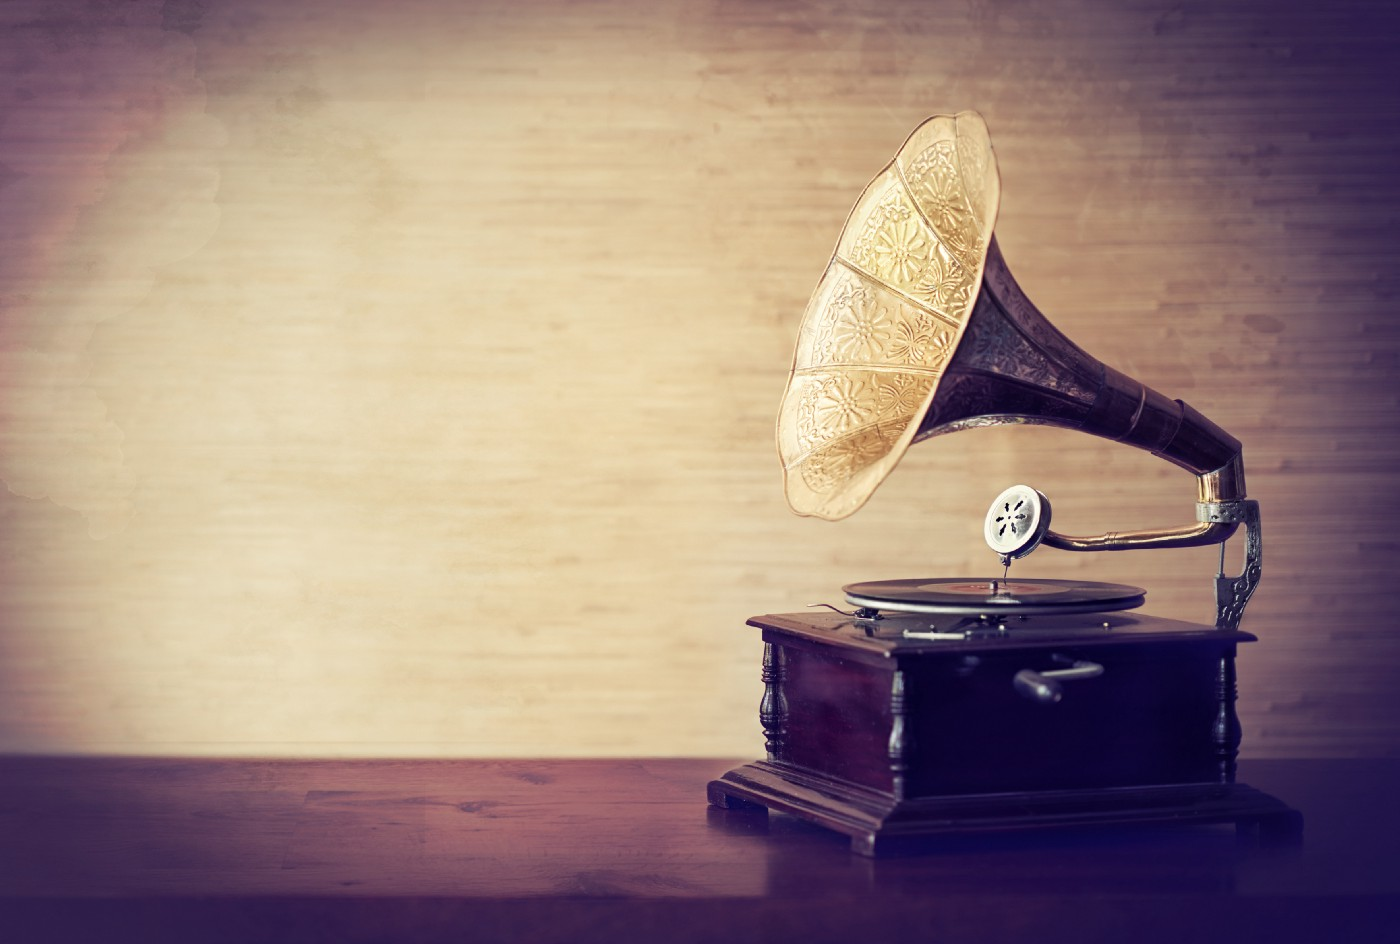 Vintage style shot of a gramophone.